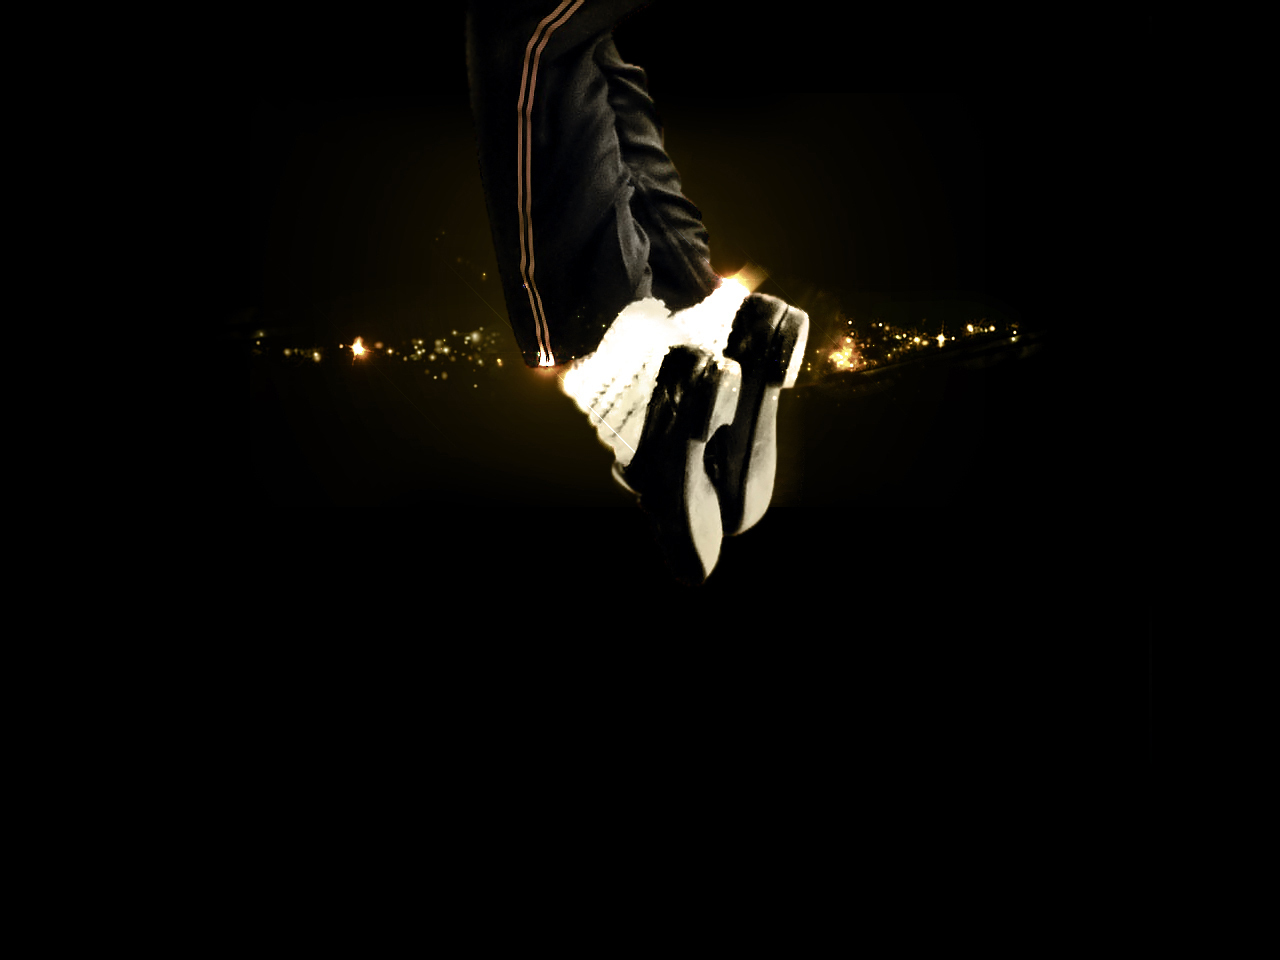 Michael Jackson Moonwalk Wallpapers For Iphone Festival Wallpaper 1280x960